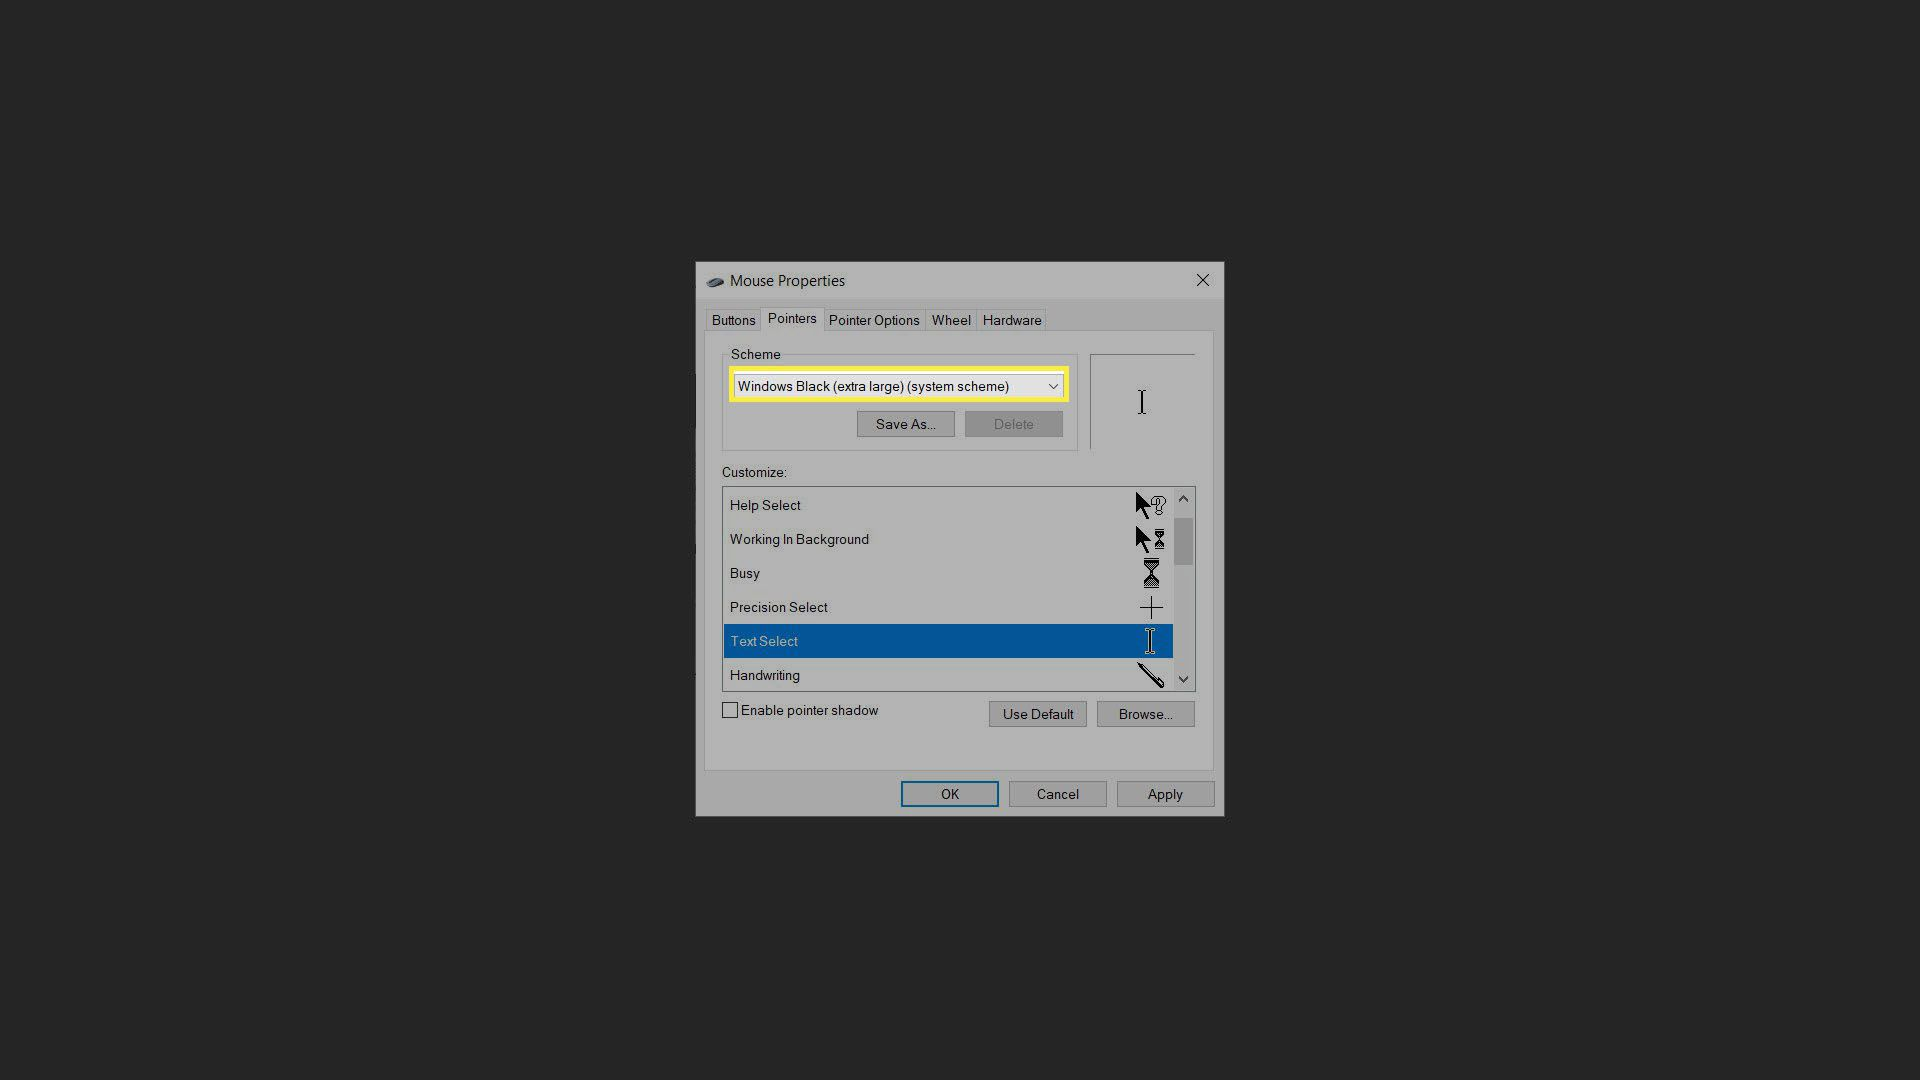 Preview Cursor in Mouse Properties